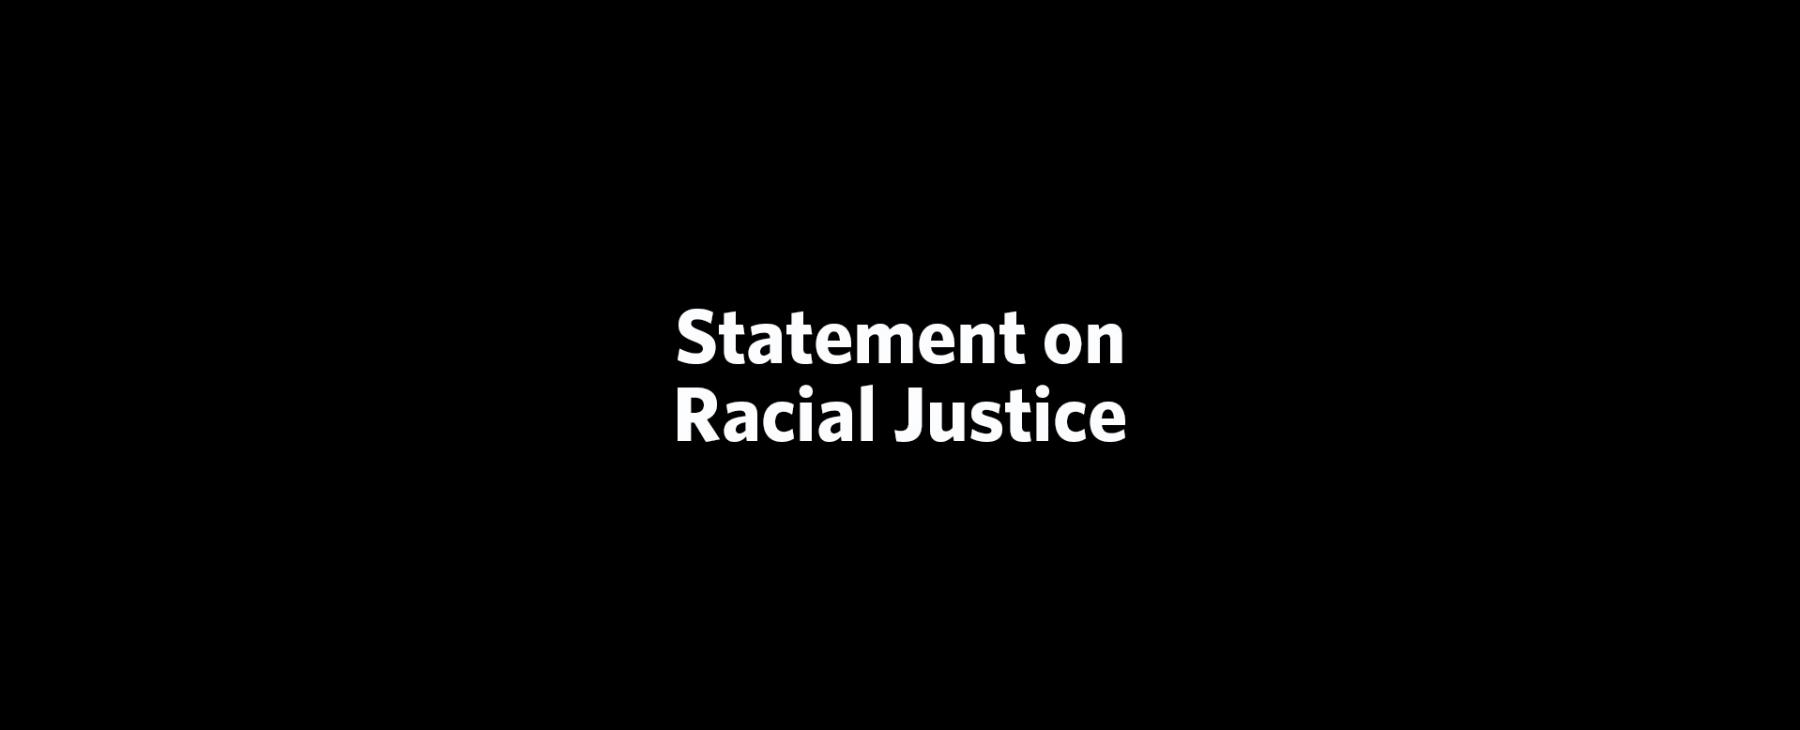 Statement on Racial Justice